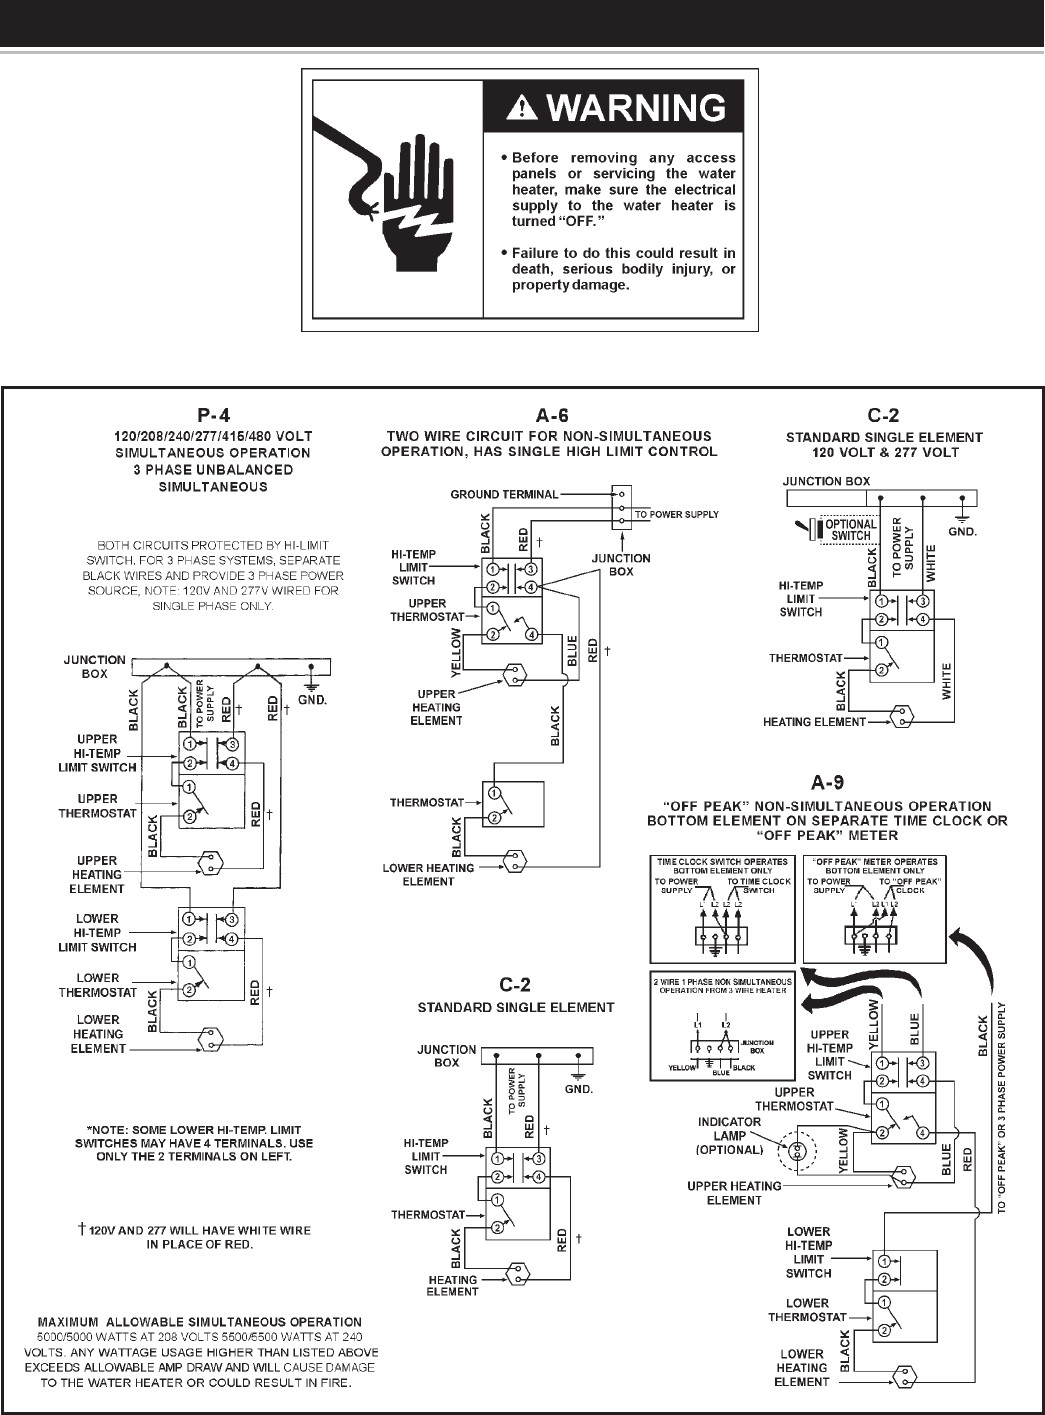 marathon water heater wiring diagram